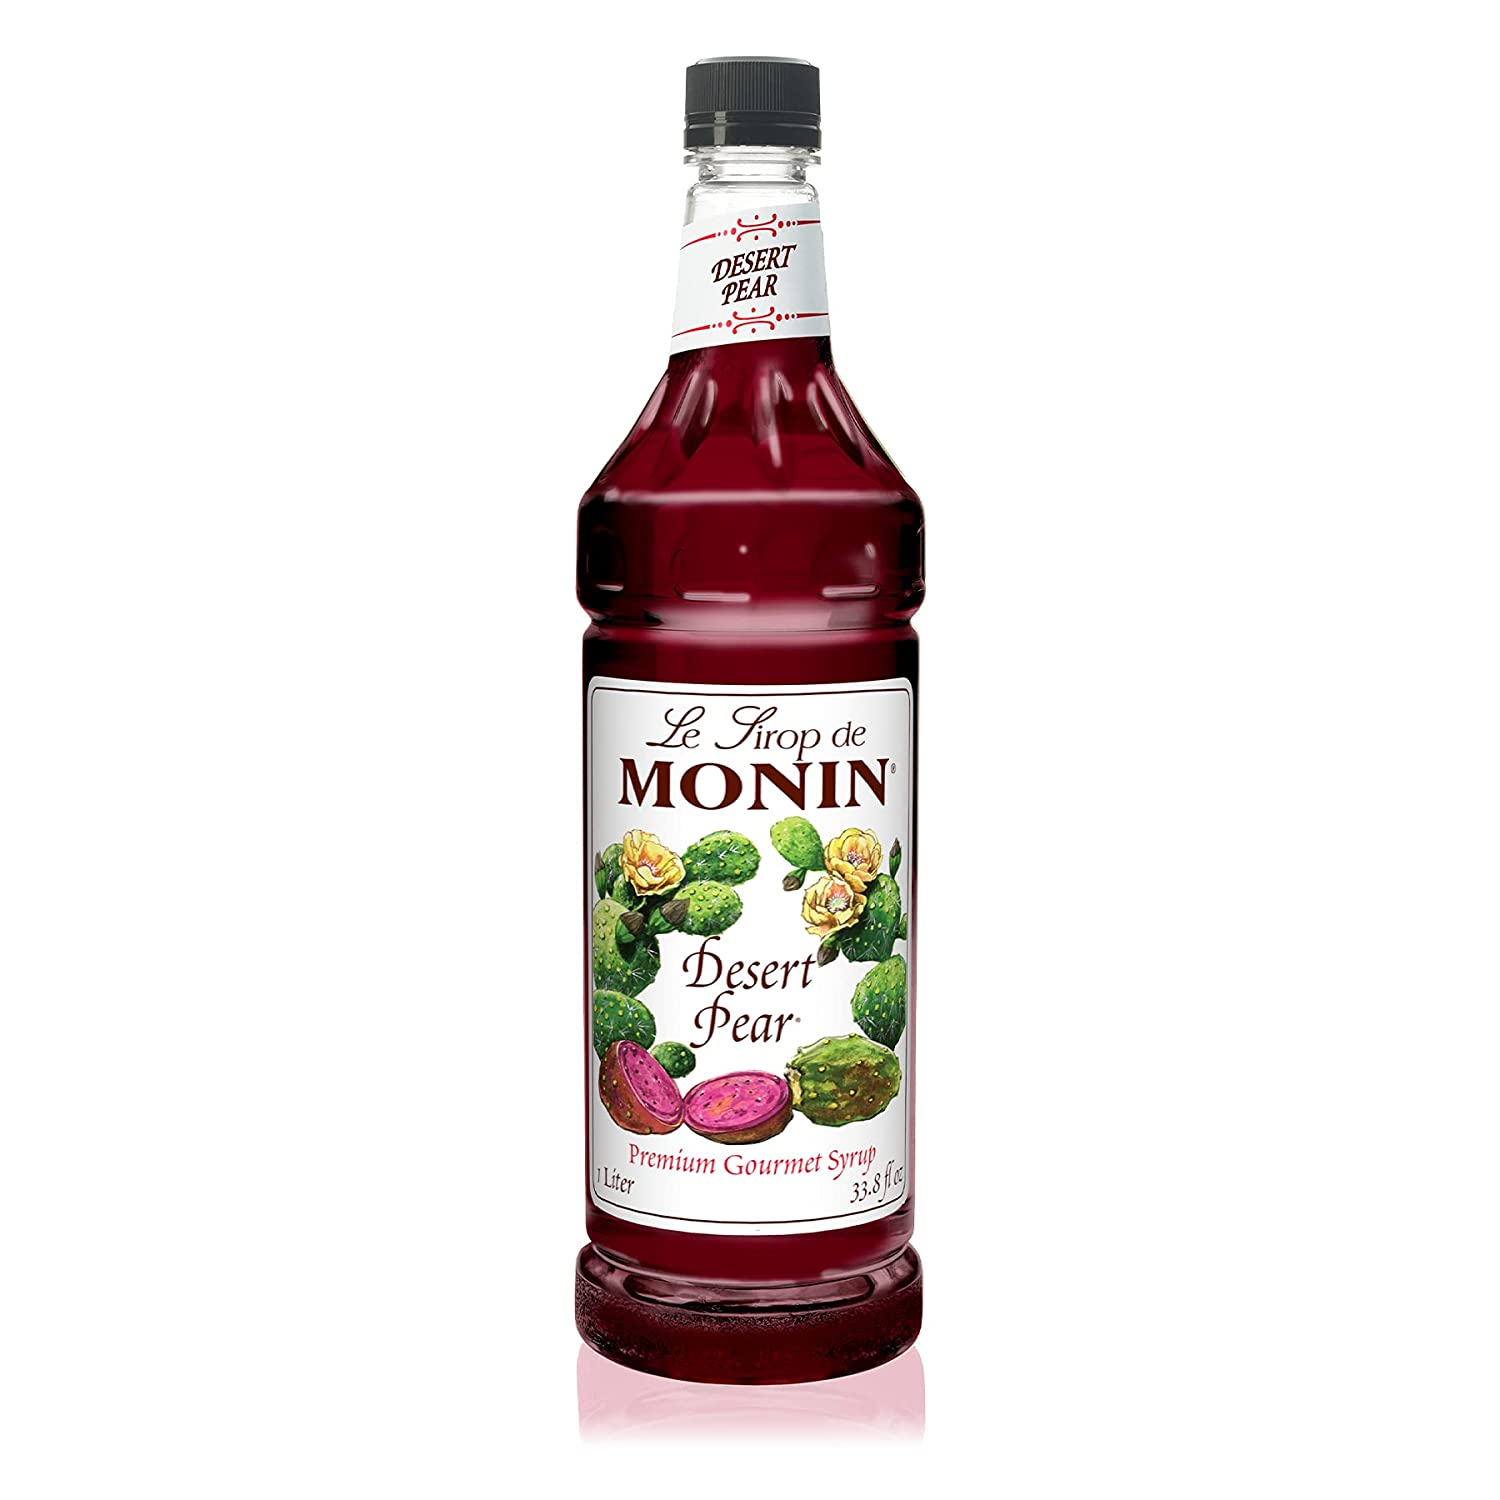 Houston Mall Monin - Desert Pear Syrup Bold Prickly New popularity Cactus Flavor of N